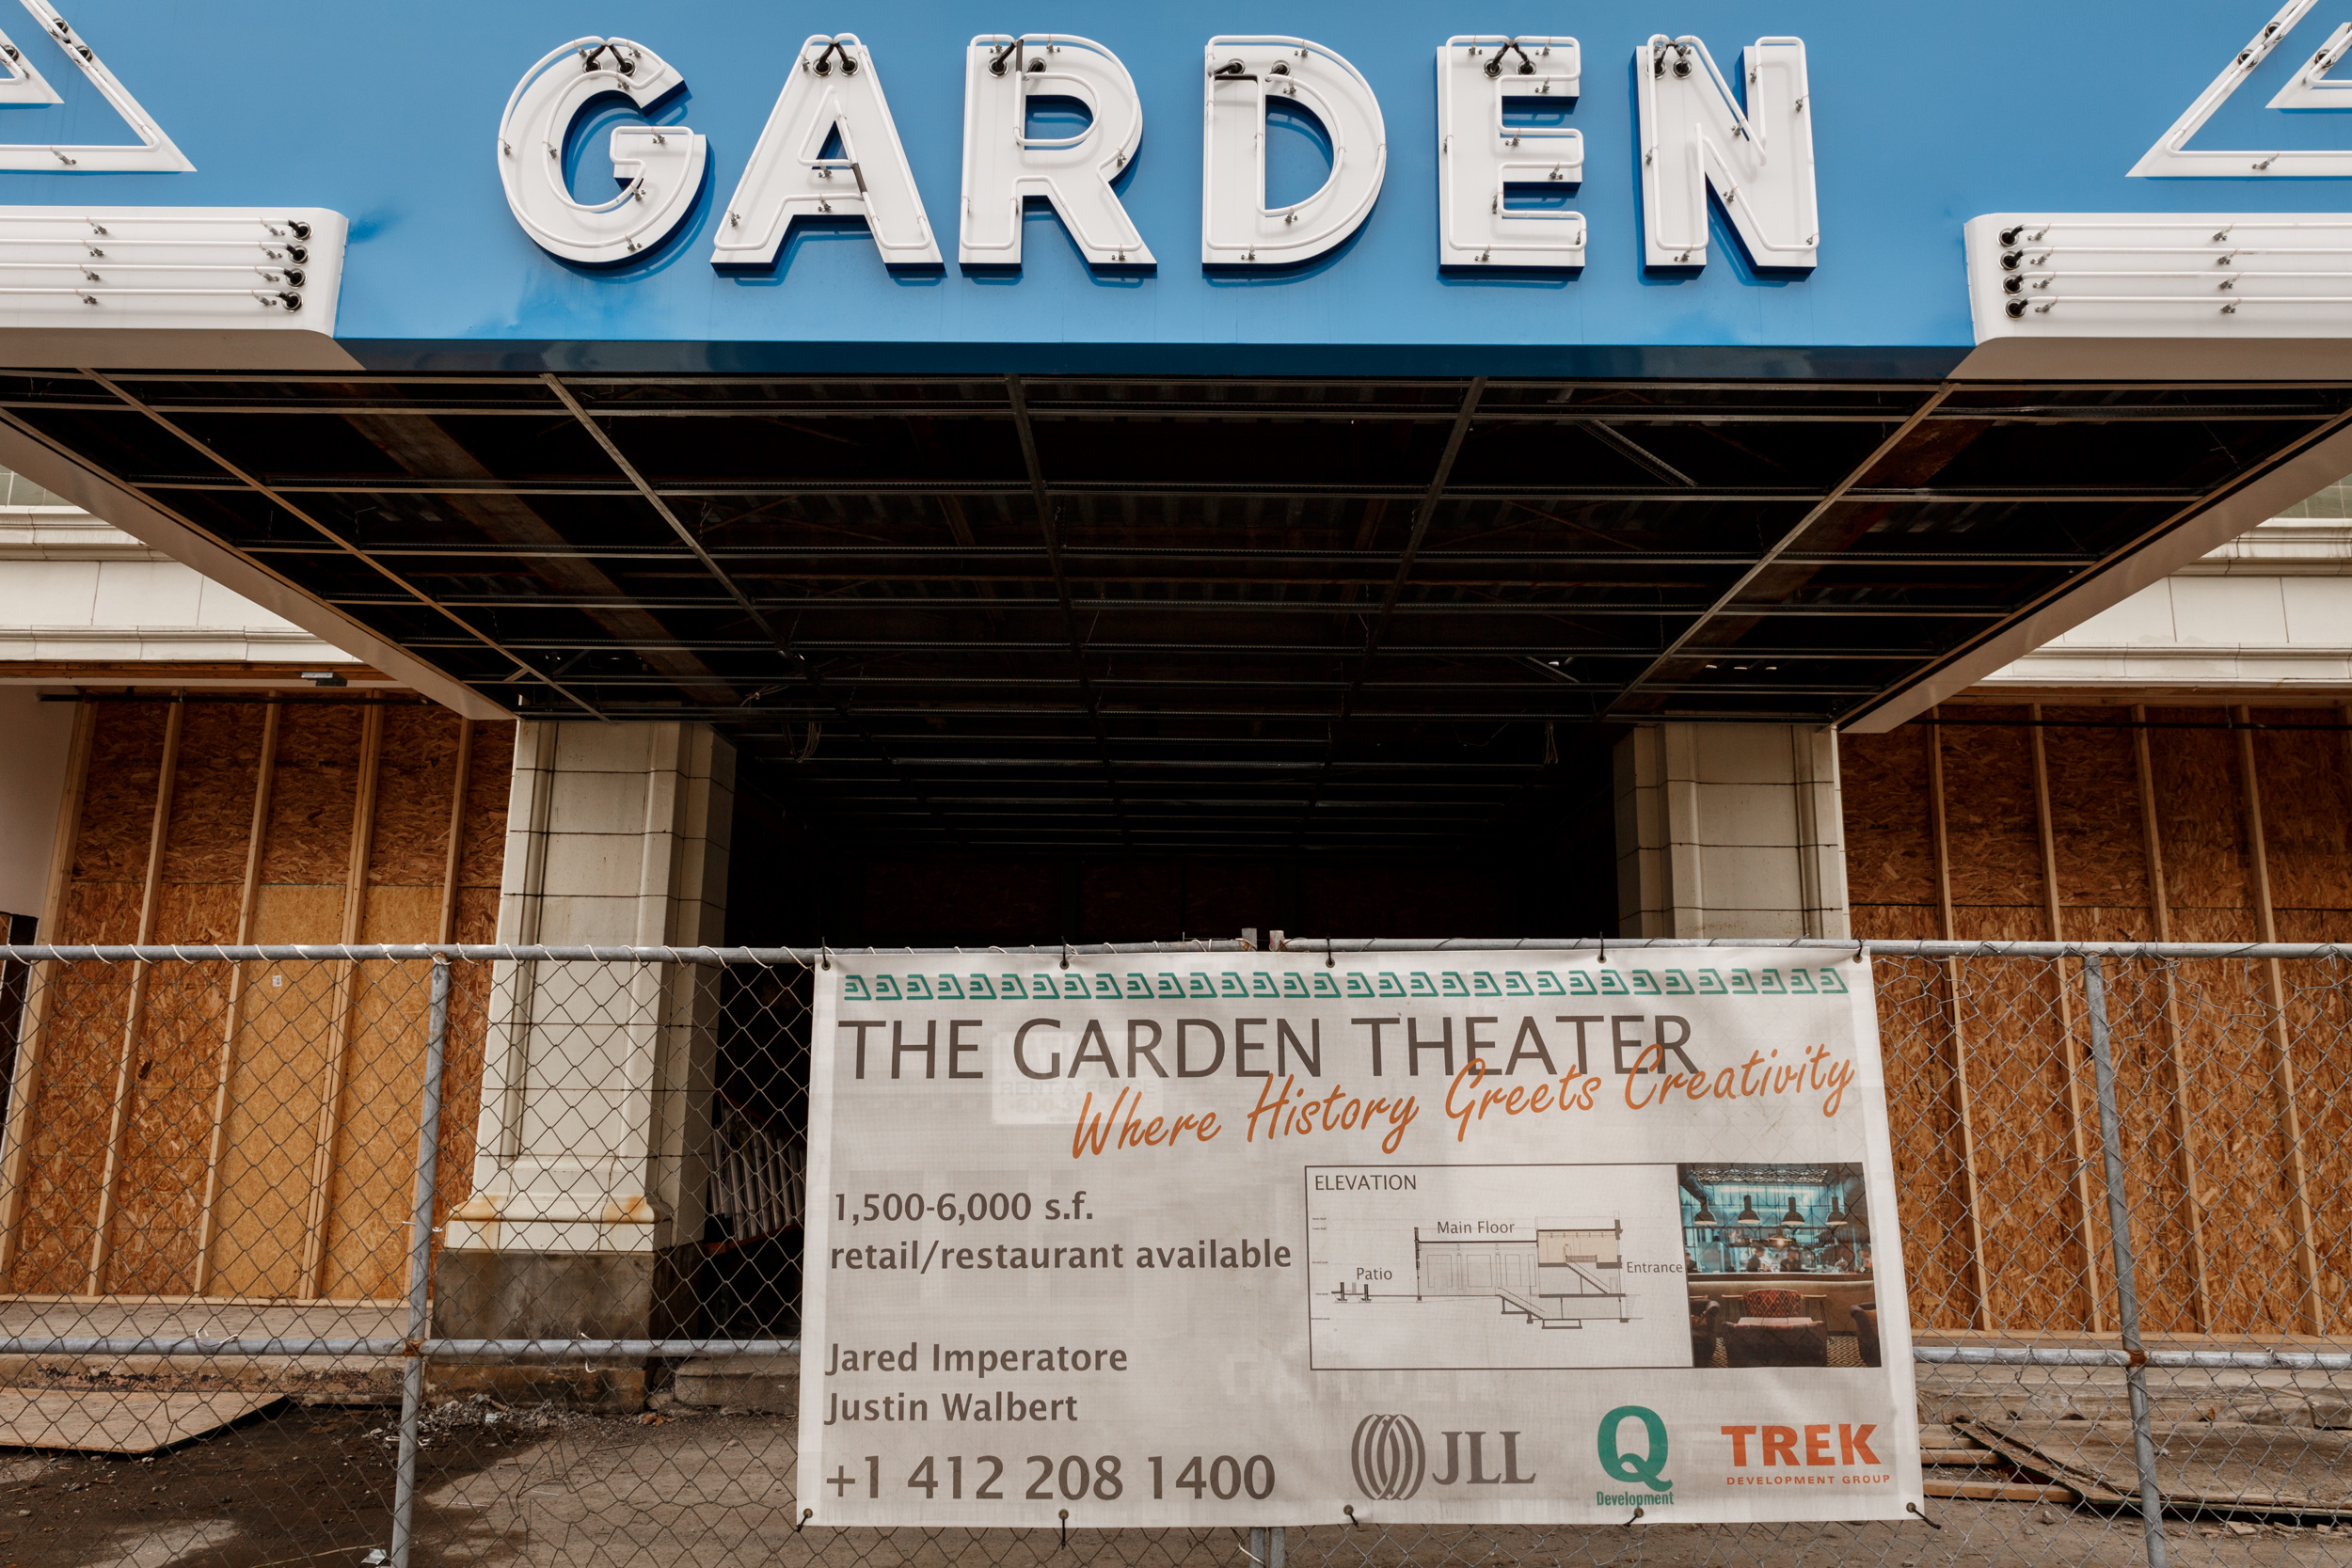 The Garden Theater building has a lengthy history, once serving as a traditional movie theater before becoming an X-rated theater. Today, the theater is undergoing a historical redevelopment of its own. (Photo by Maranie Rae Staab/PublicSource)